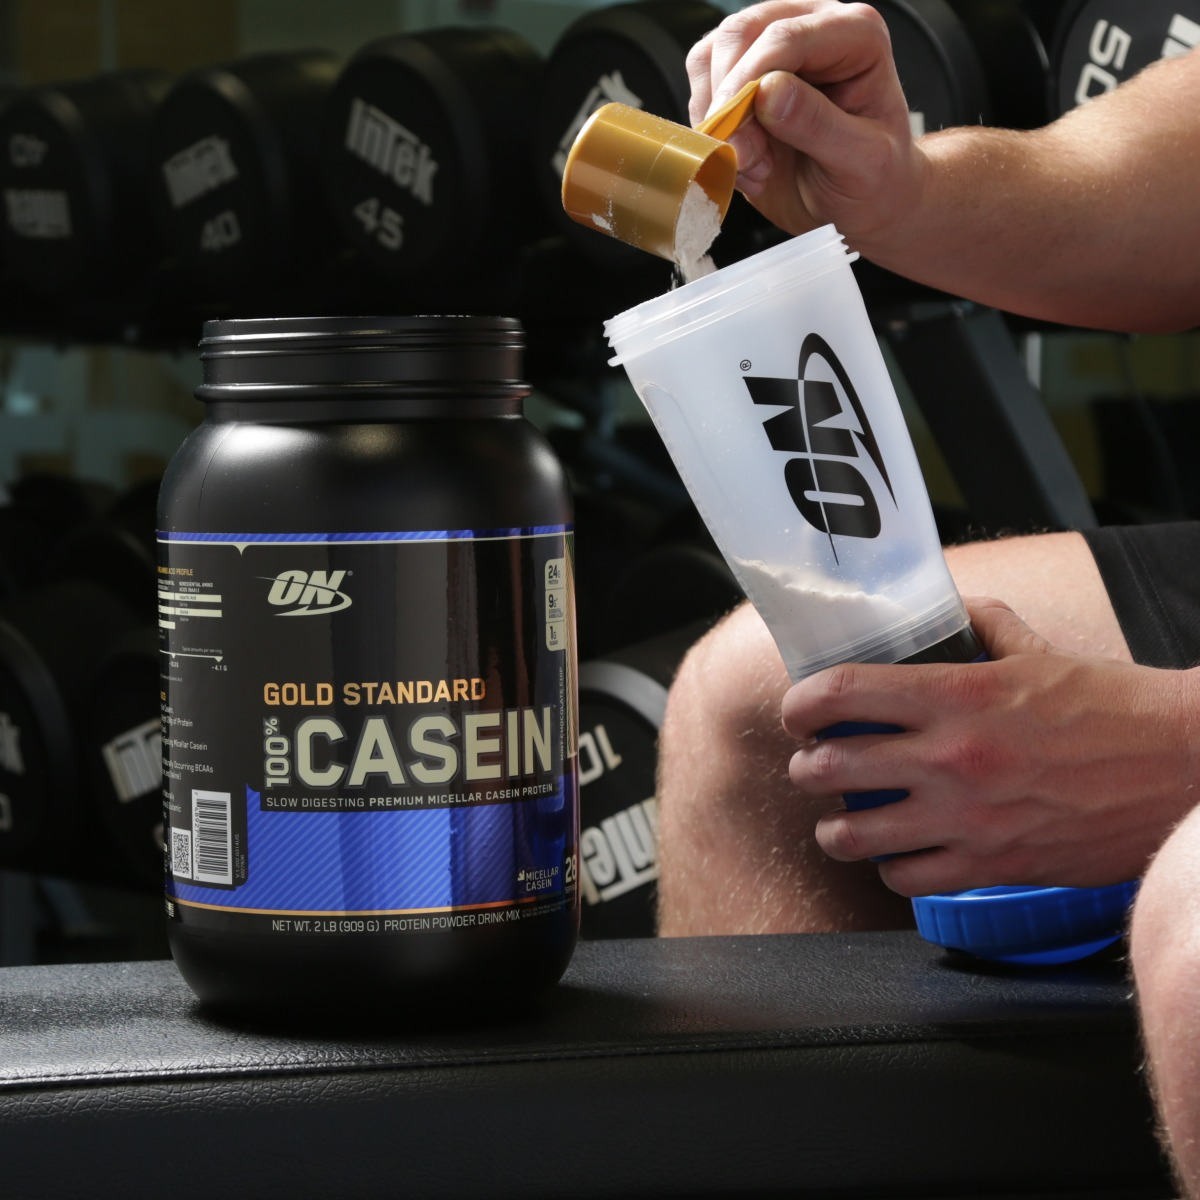 Benefits of Casein & how to use it